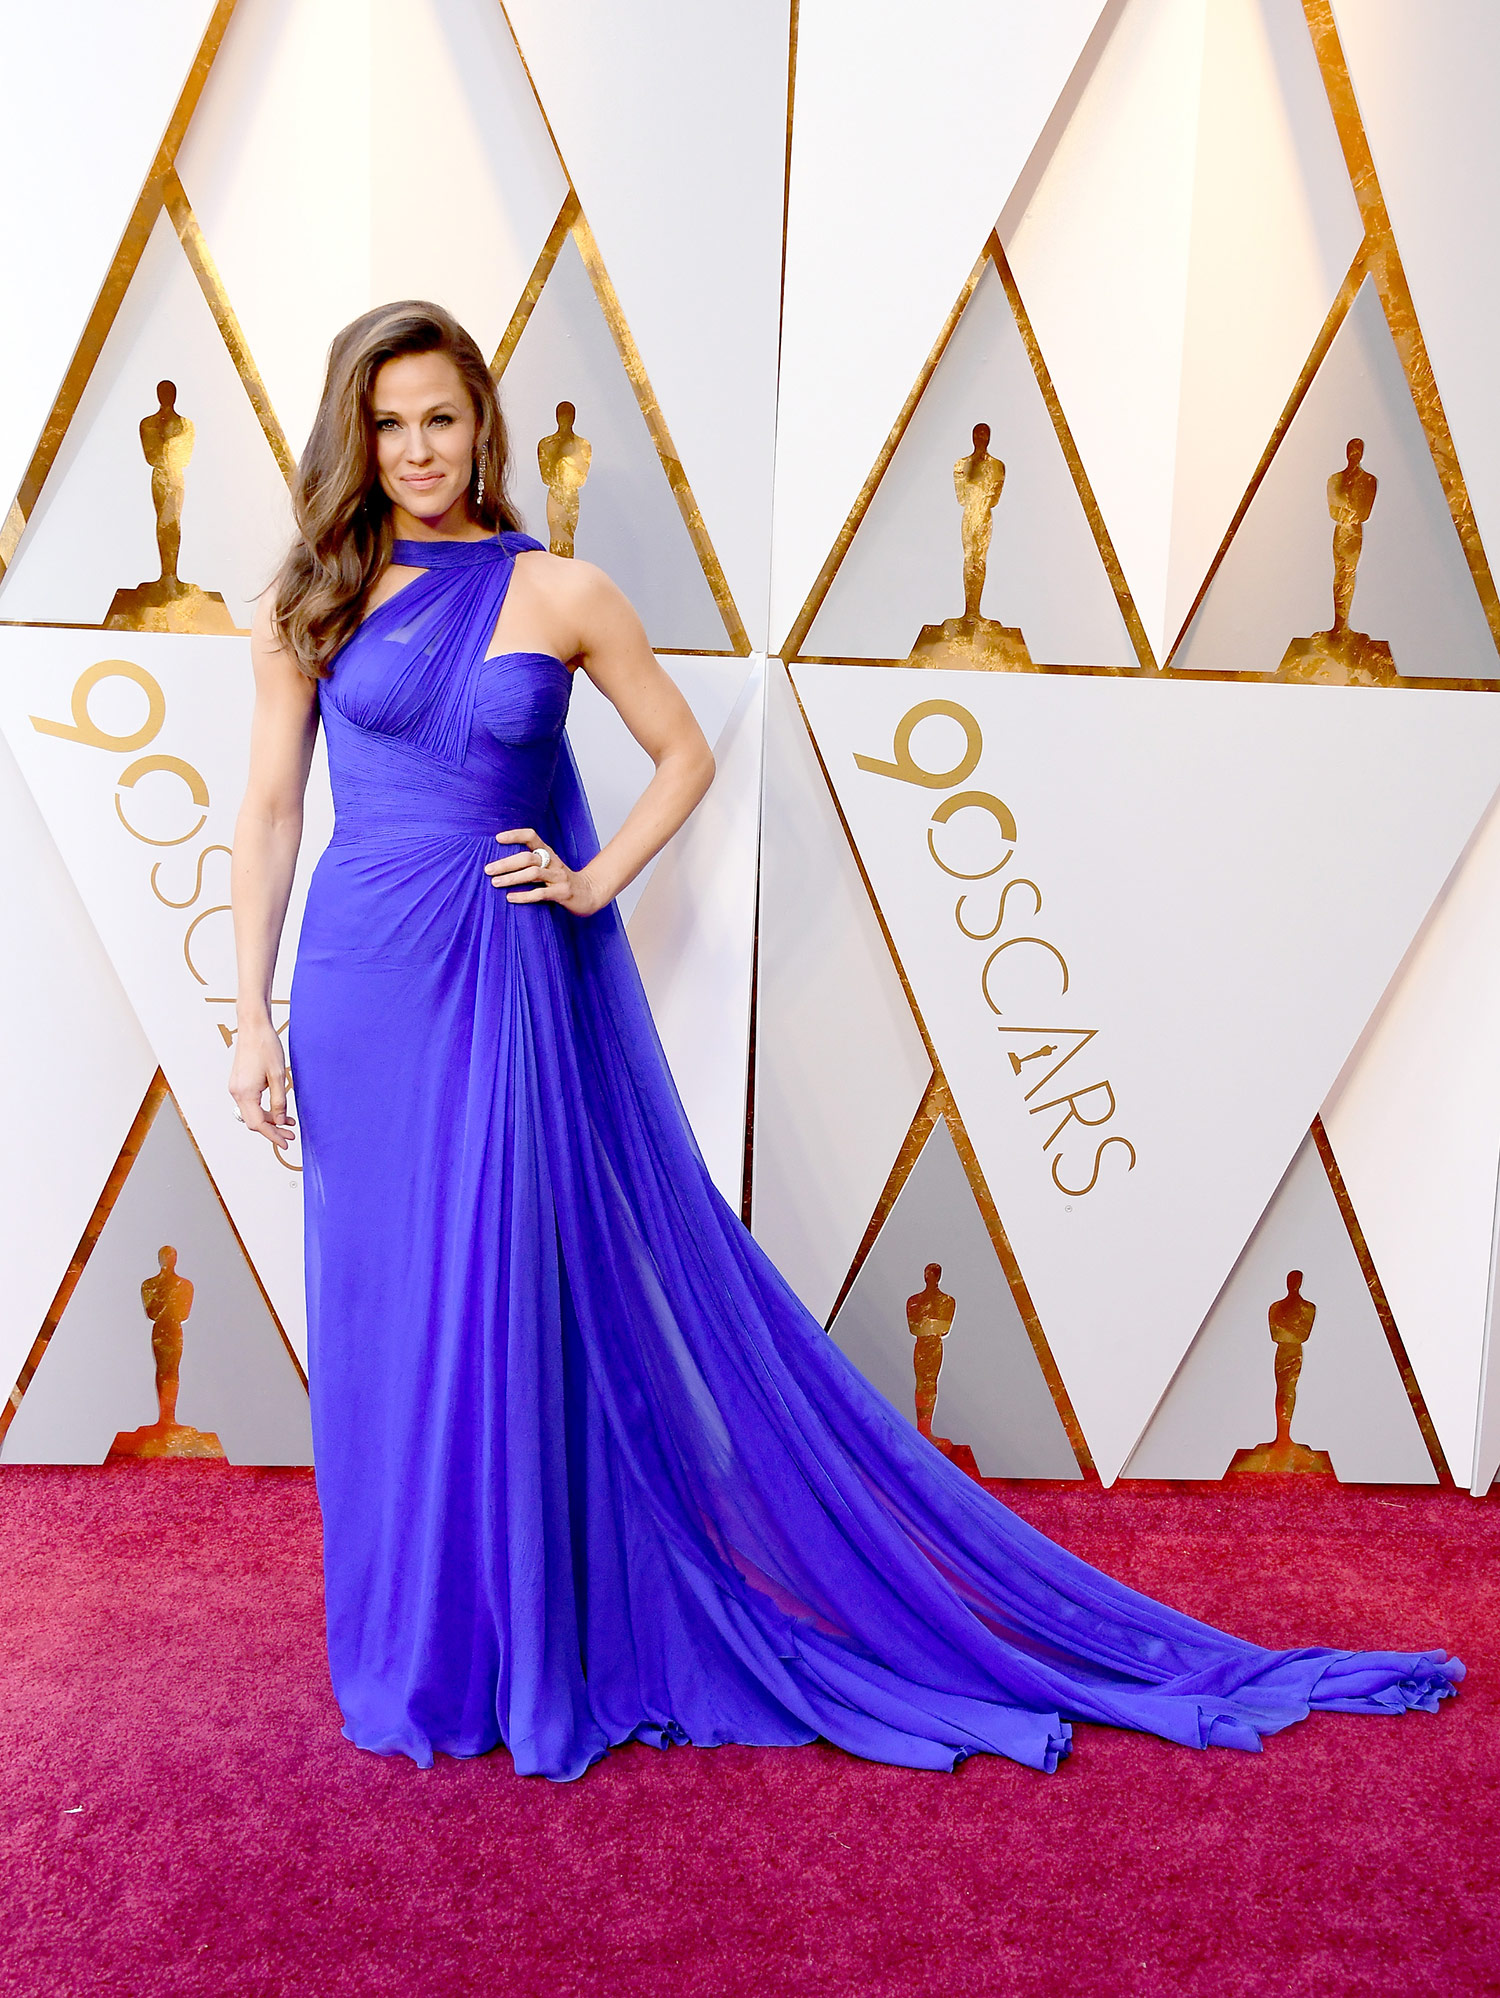 Jennifer Garner at Oscars 2018